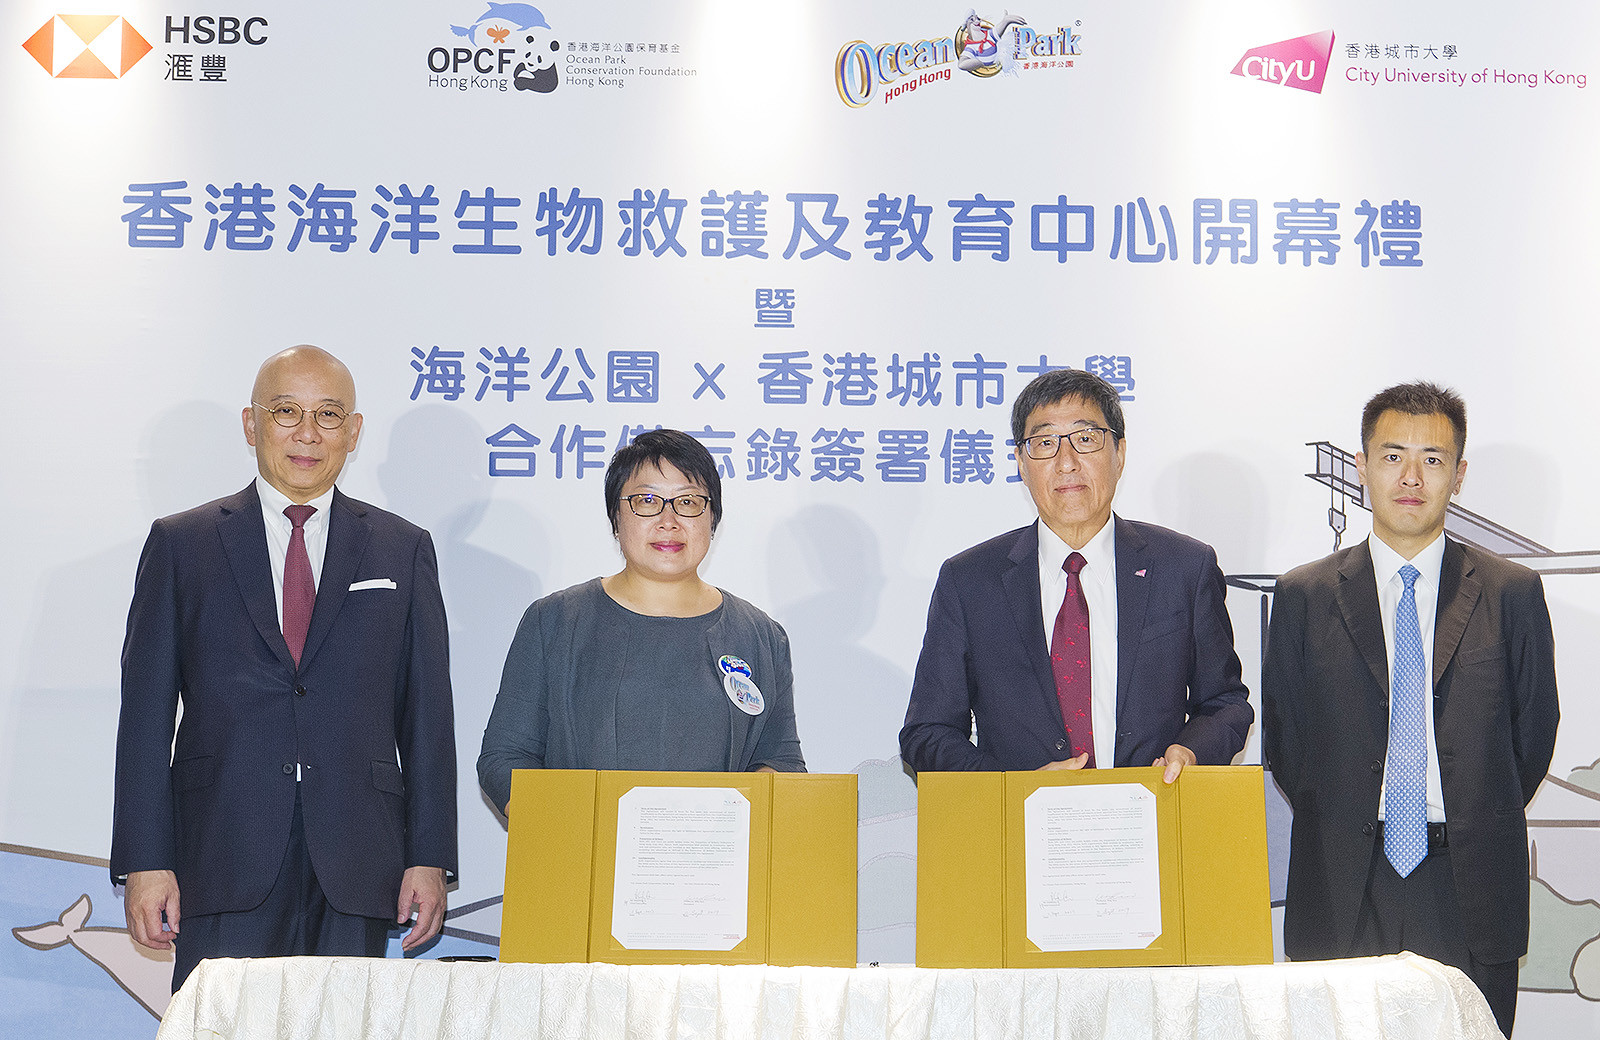 CityU signs a MOU with Ocean Park